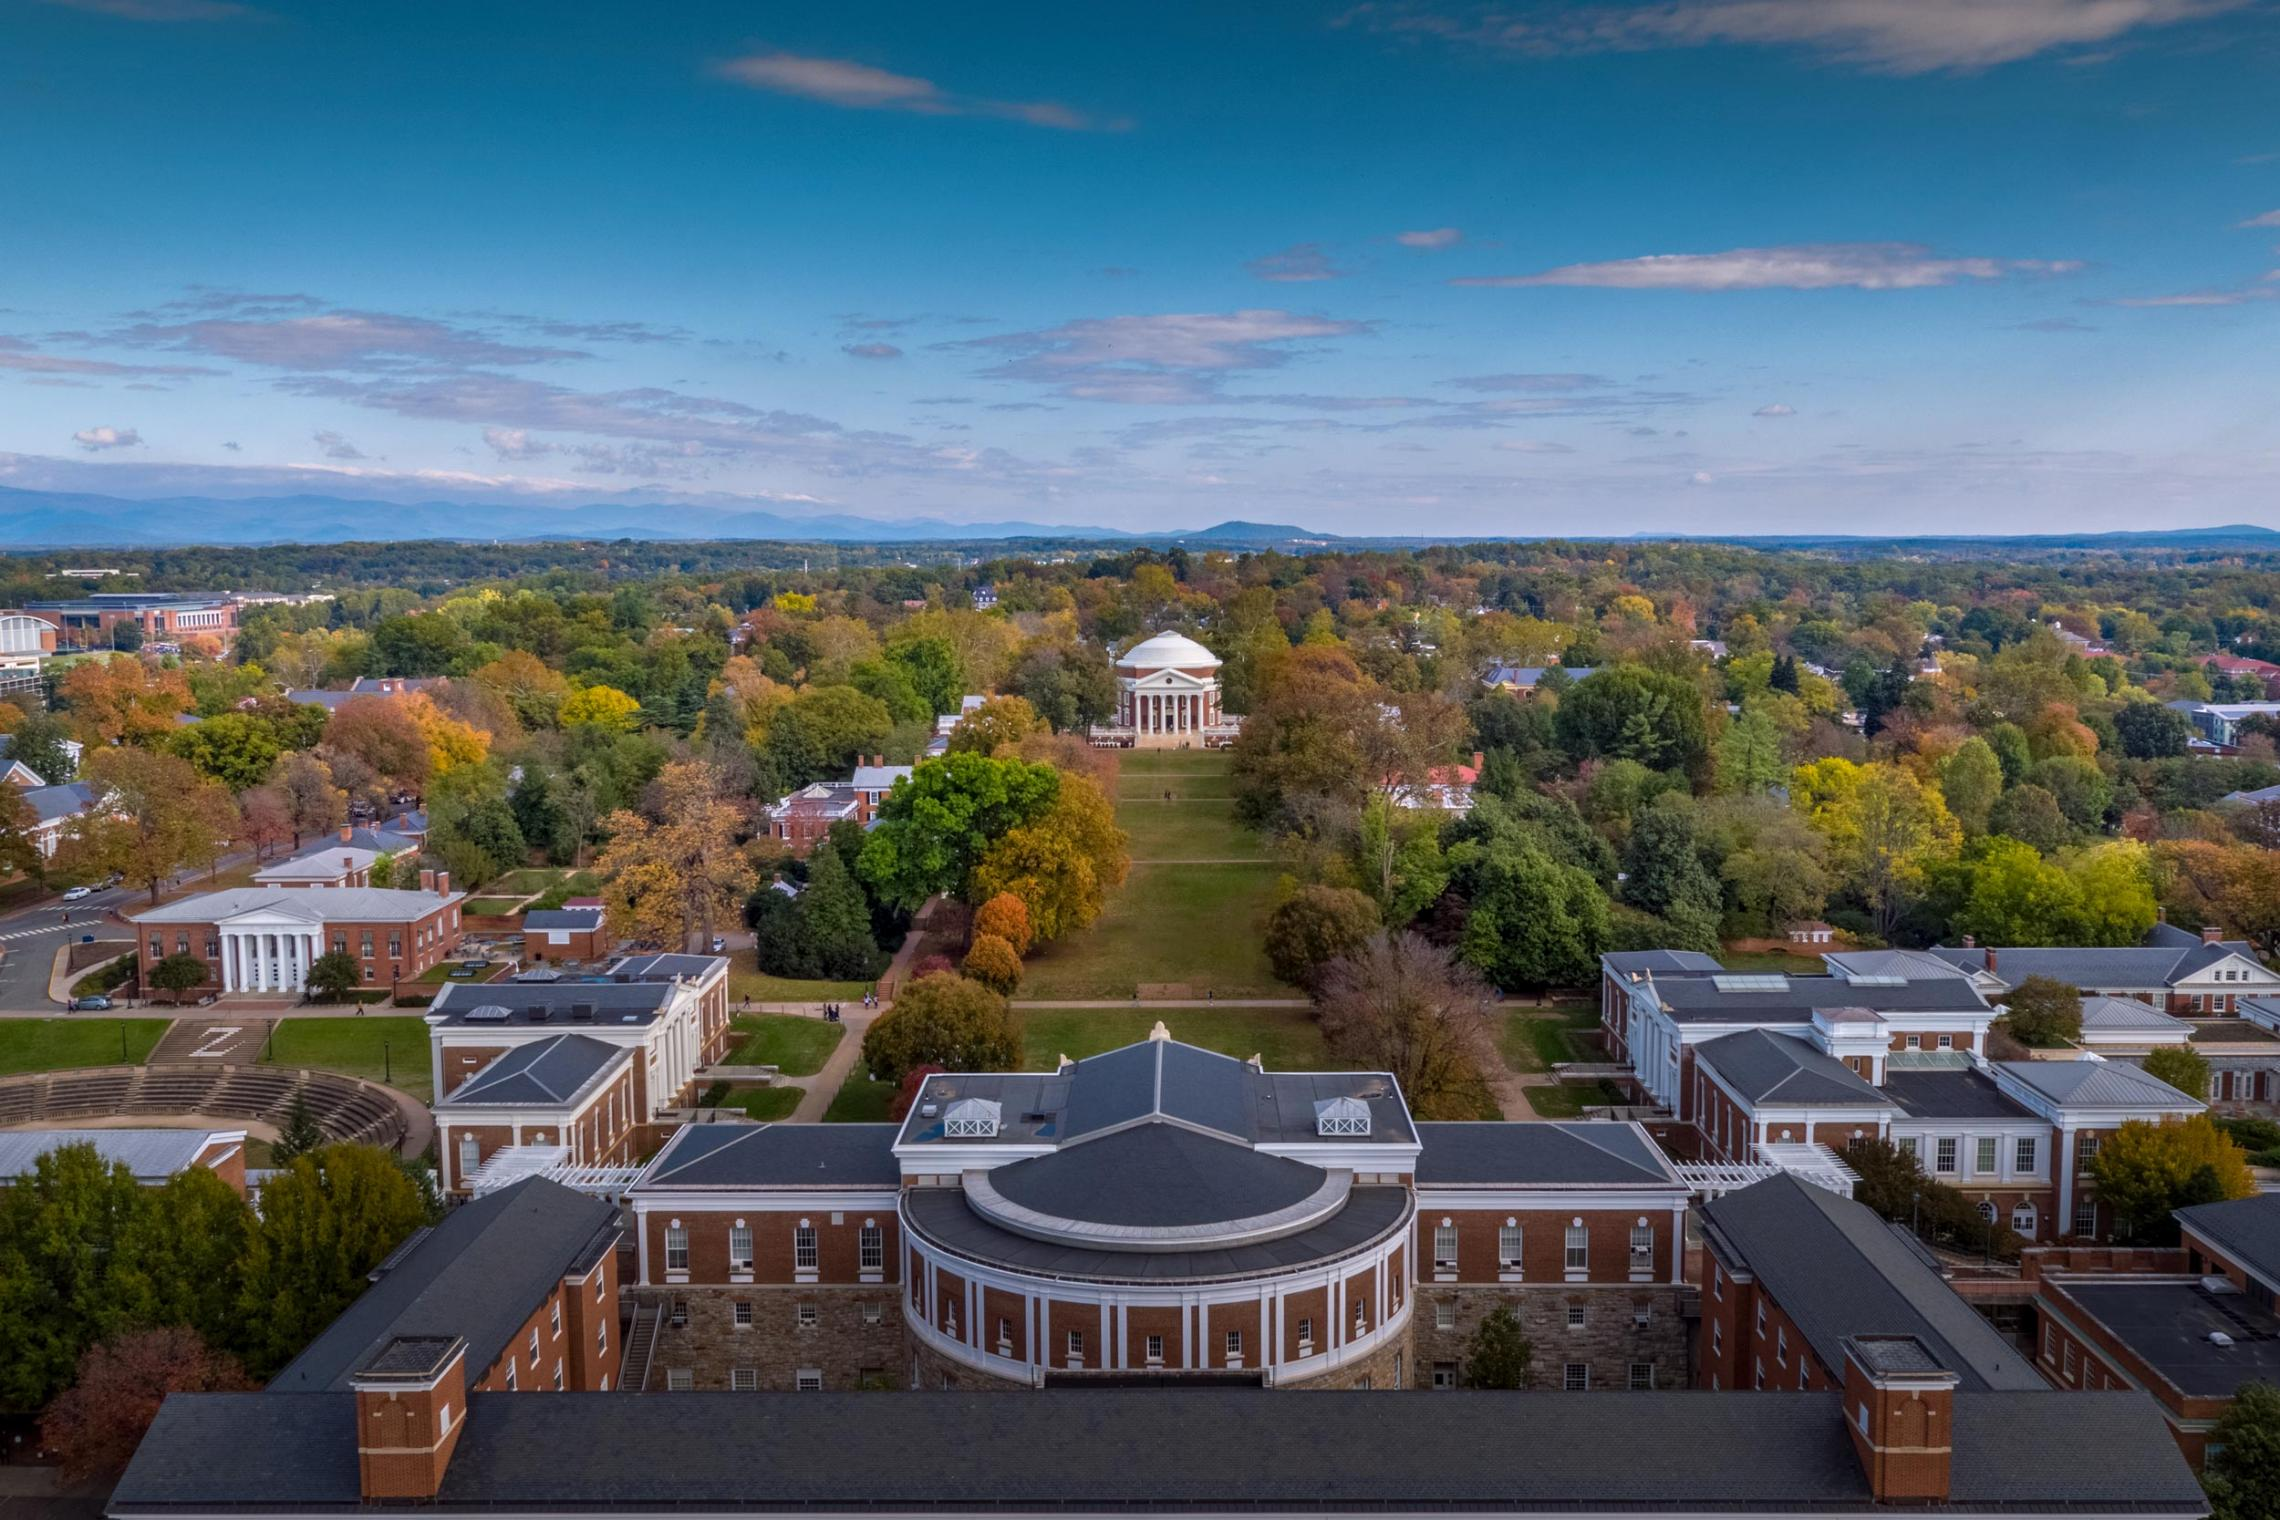 Accolades: UVA Lands at No. 5 Among Public Universities in Forbes List